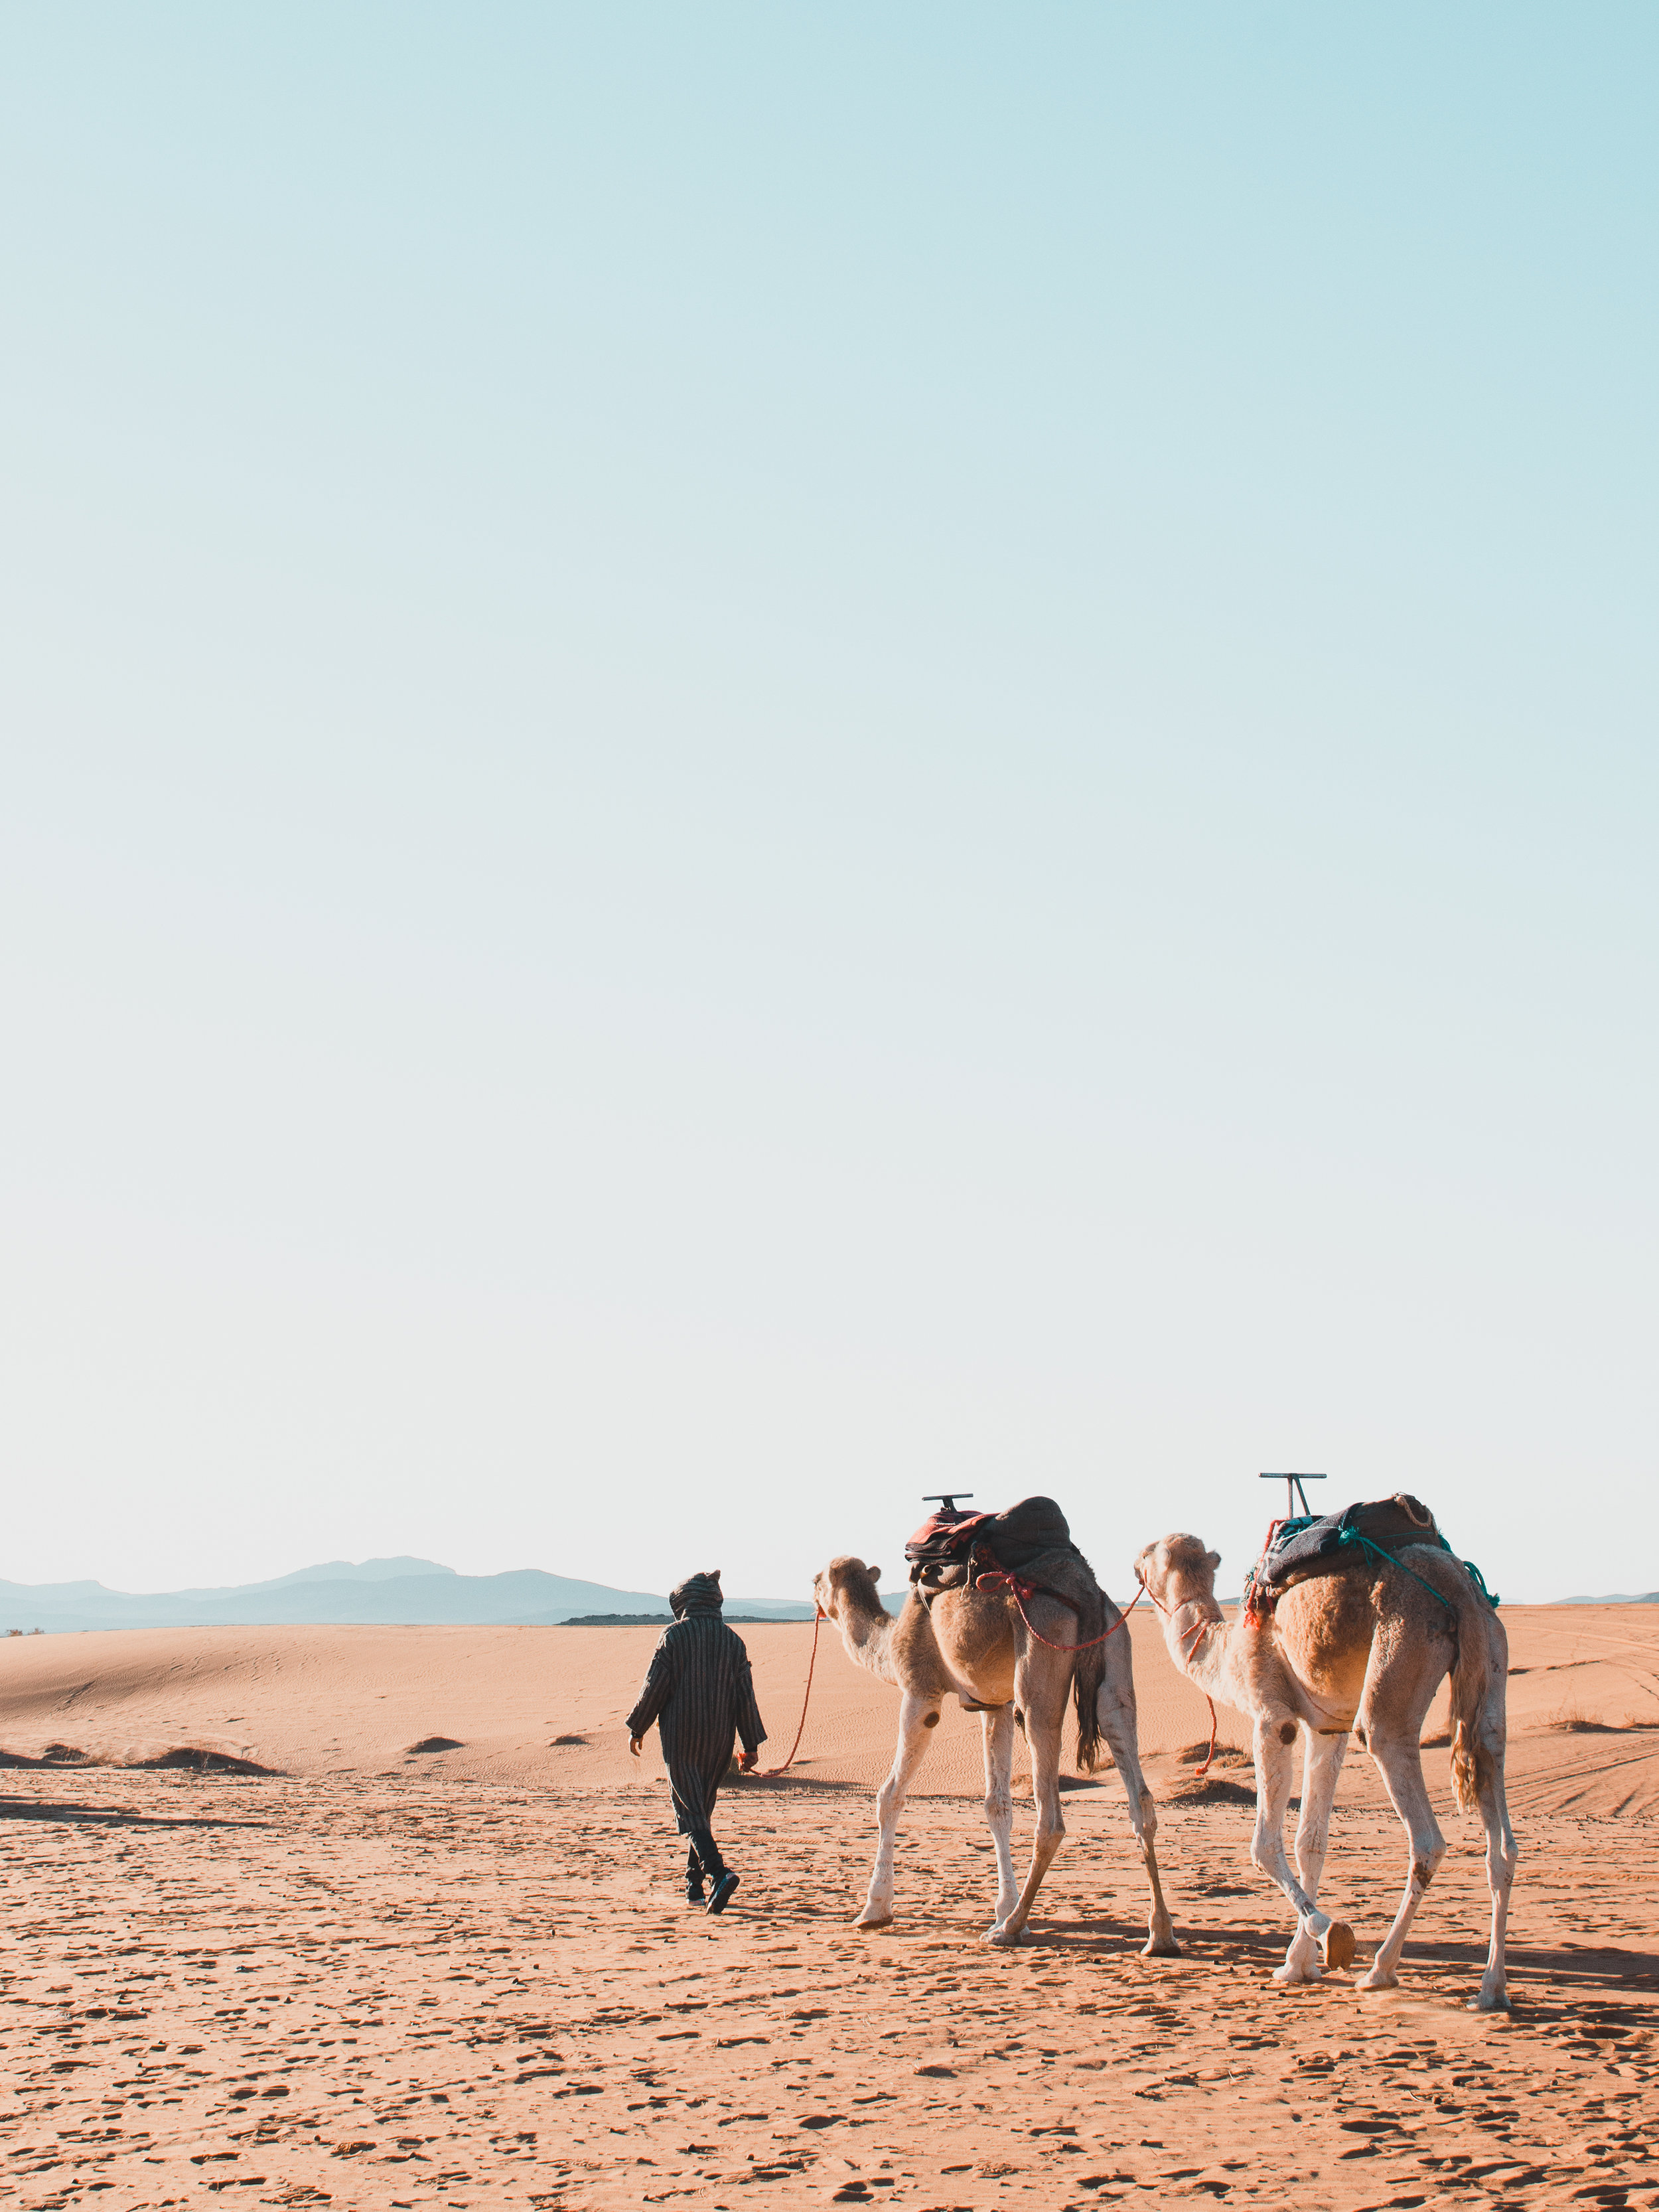 Be on the lookout for tourist scams in Morocco